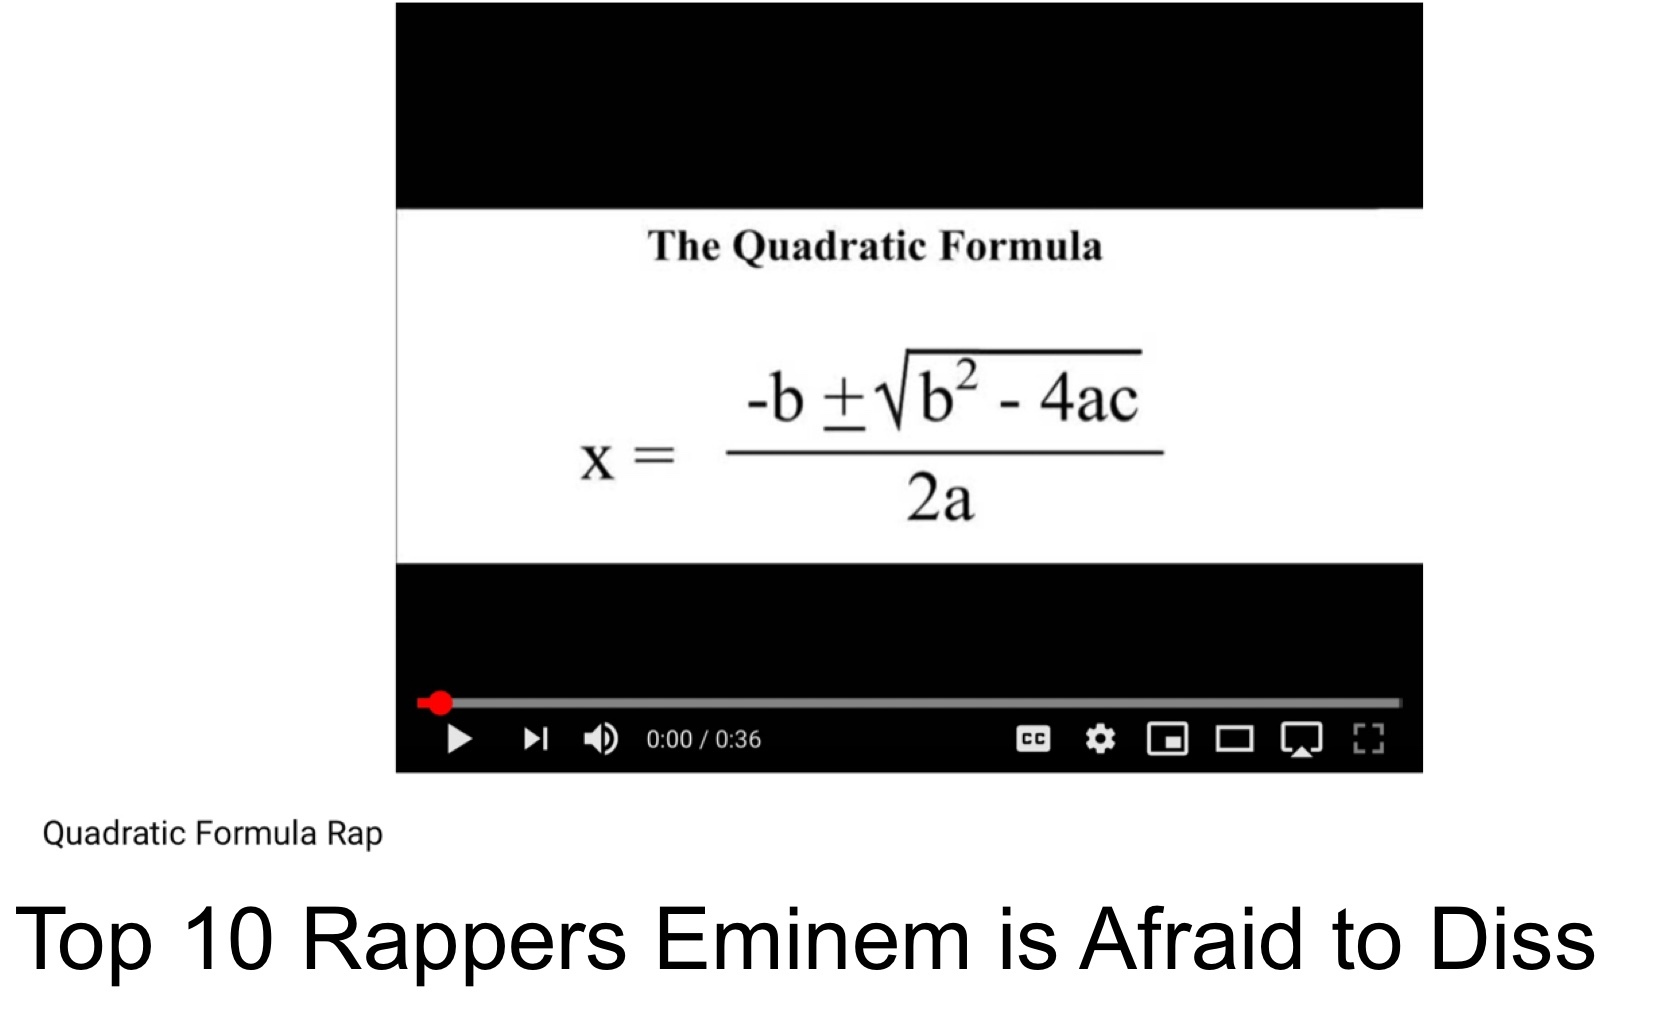 Top 10 Rappers Eminem is Afraid to Diss - meme